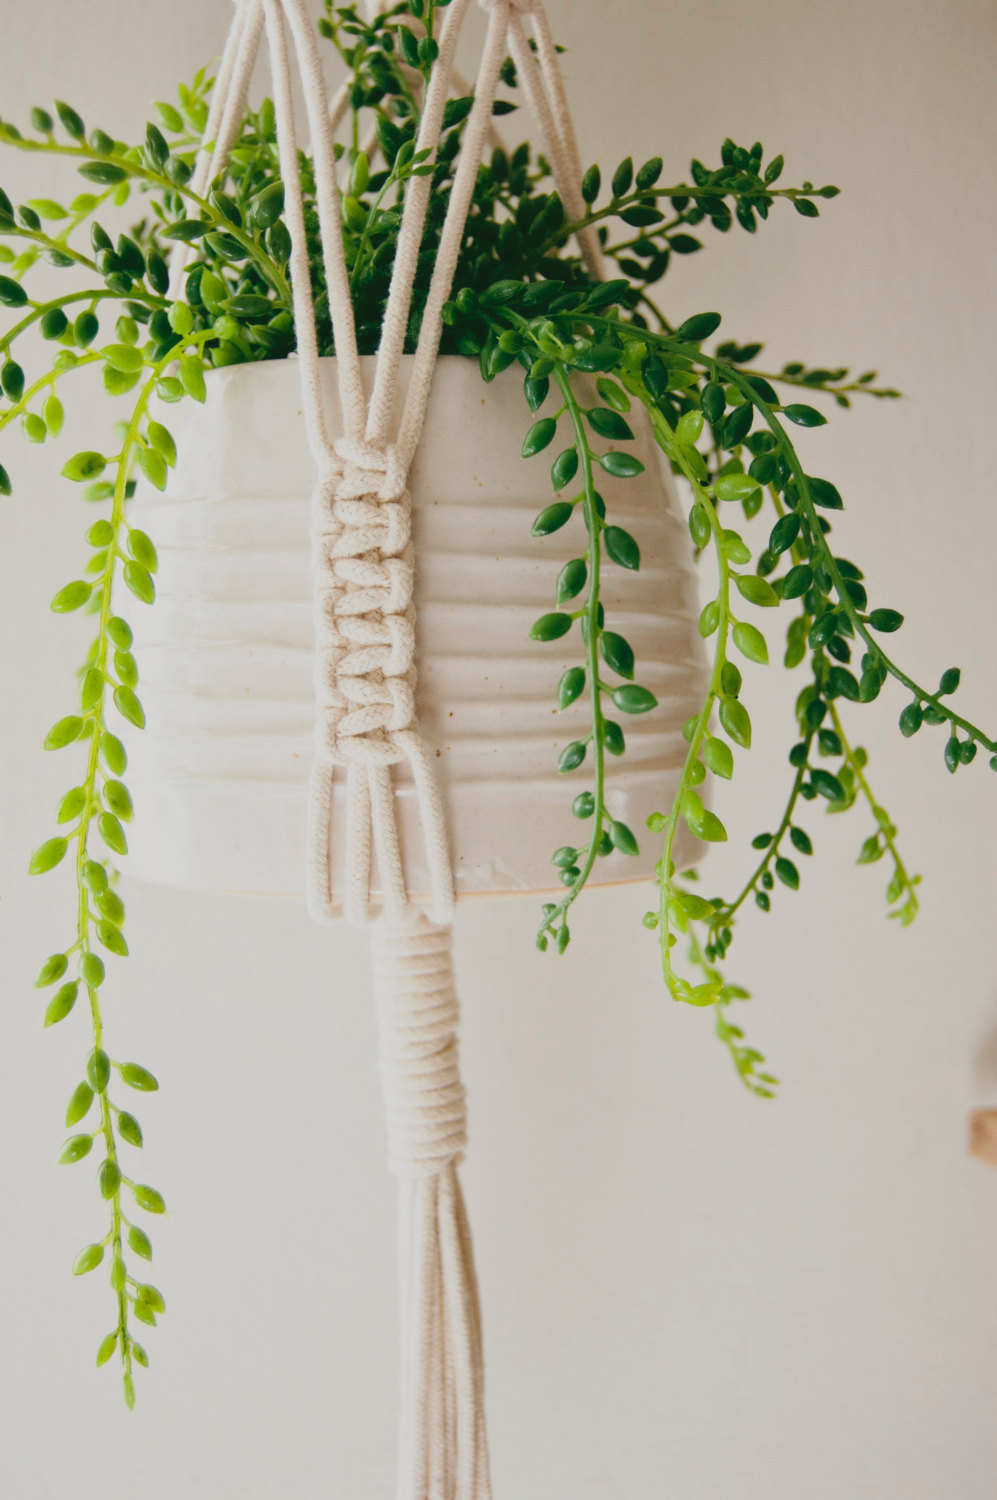 cotton-wood-plant-hanger-zoon-bottom.jpg